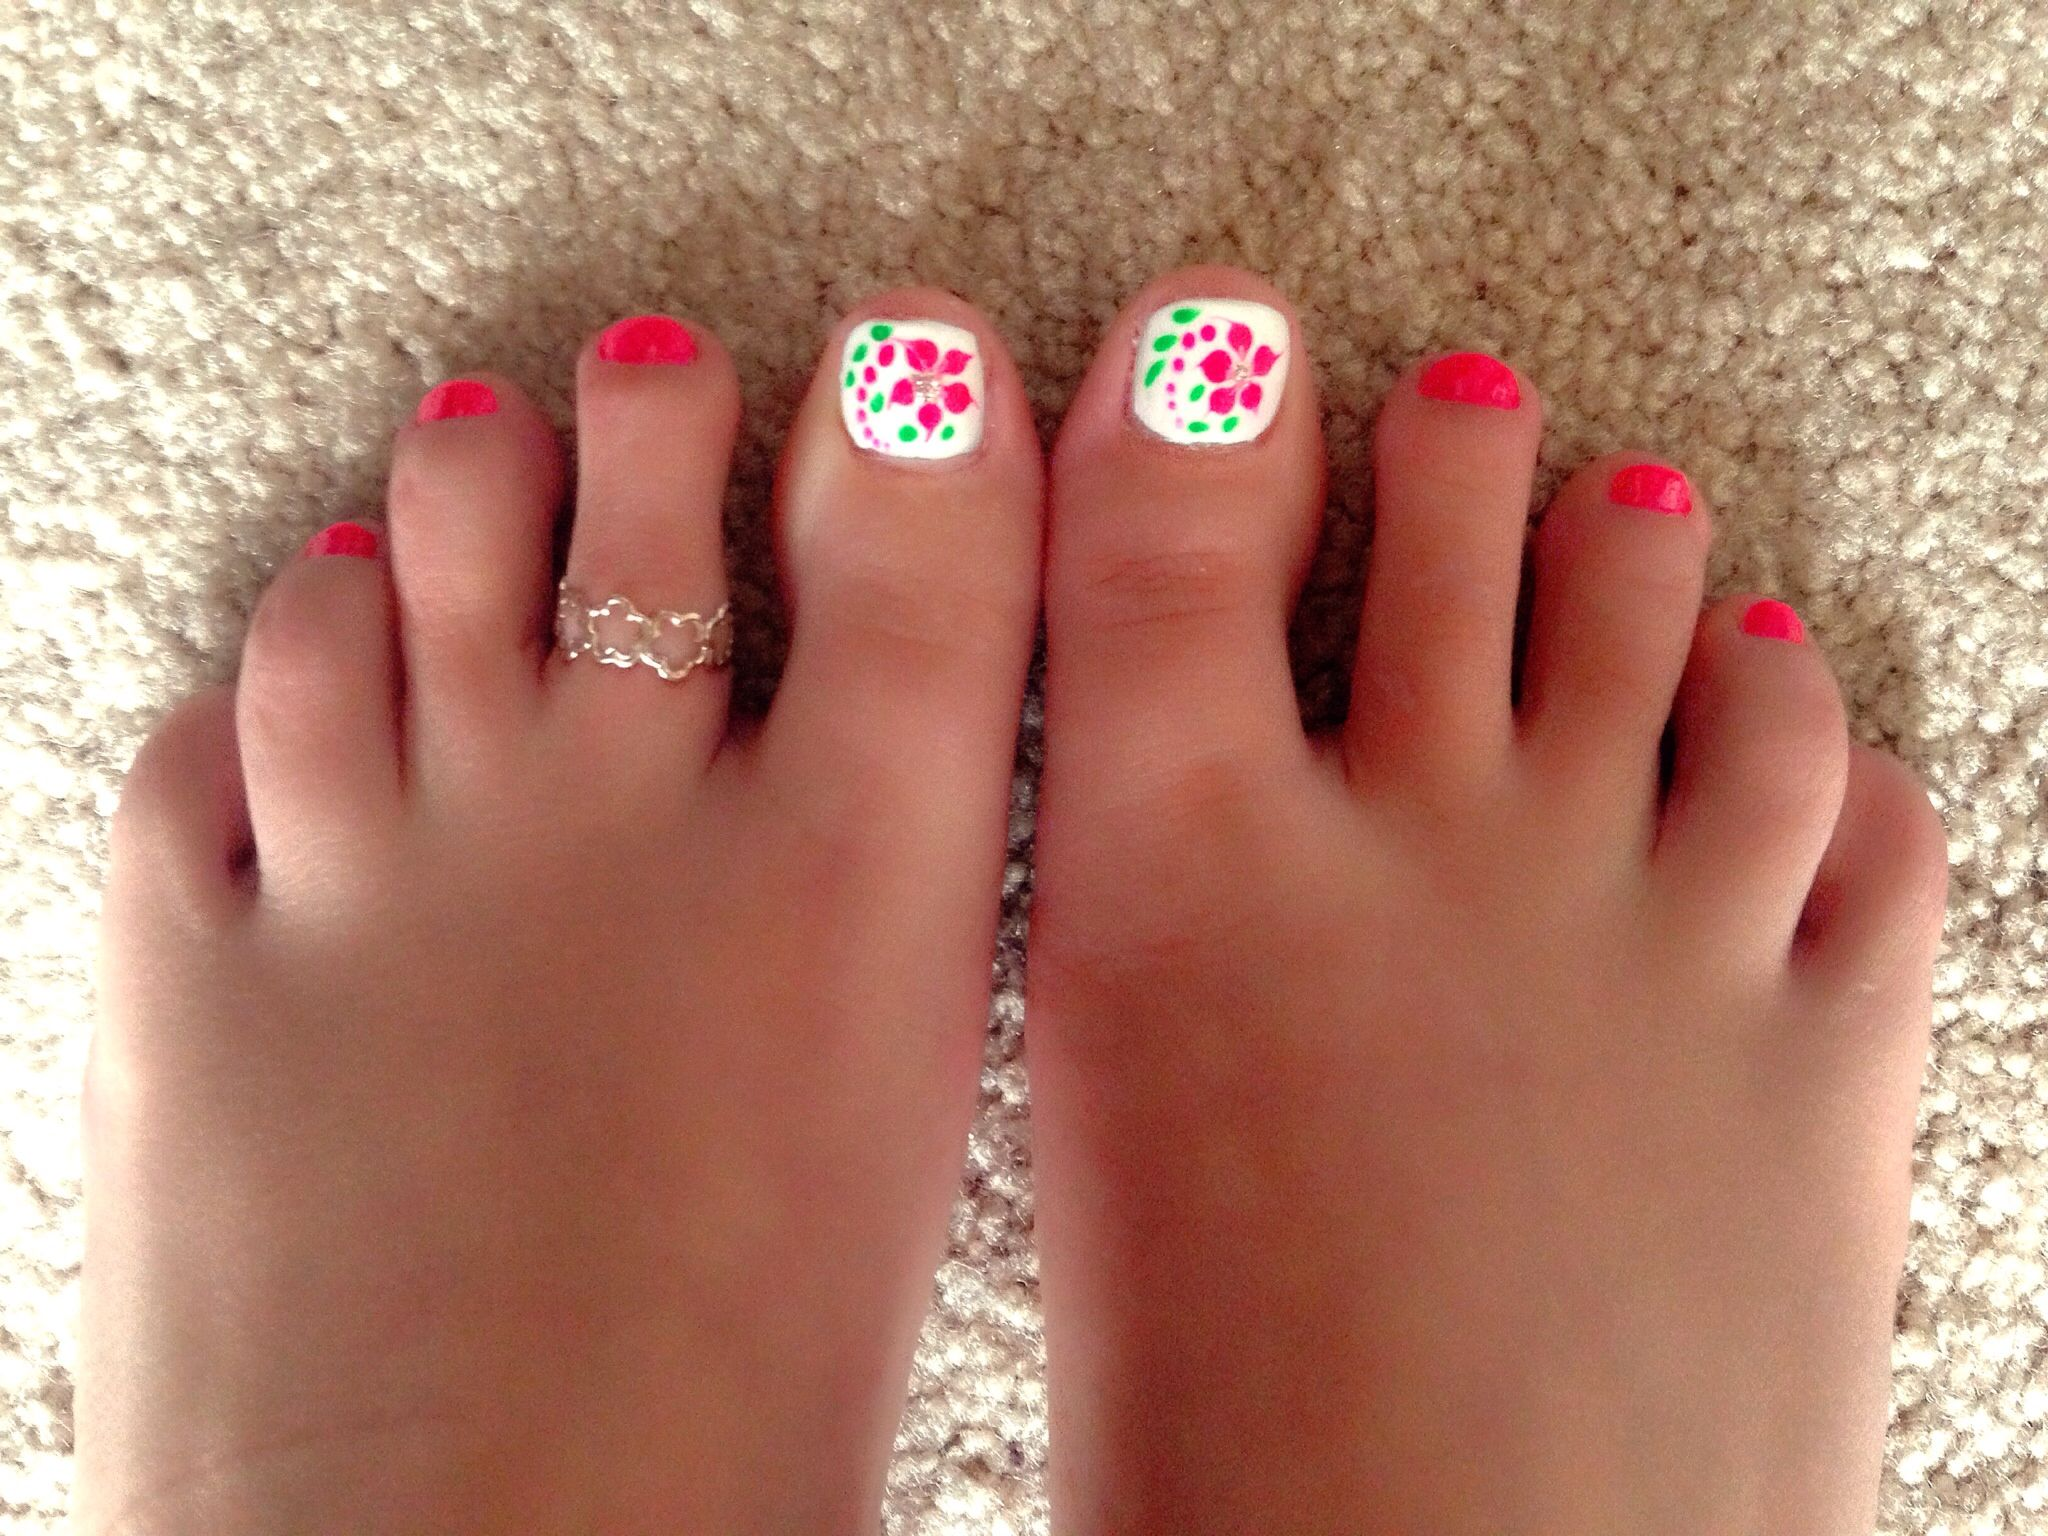 10 Eye-Catching Pedicure Ideas for Spring